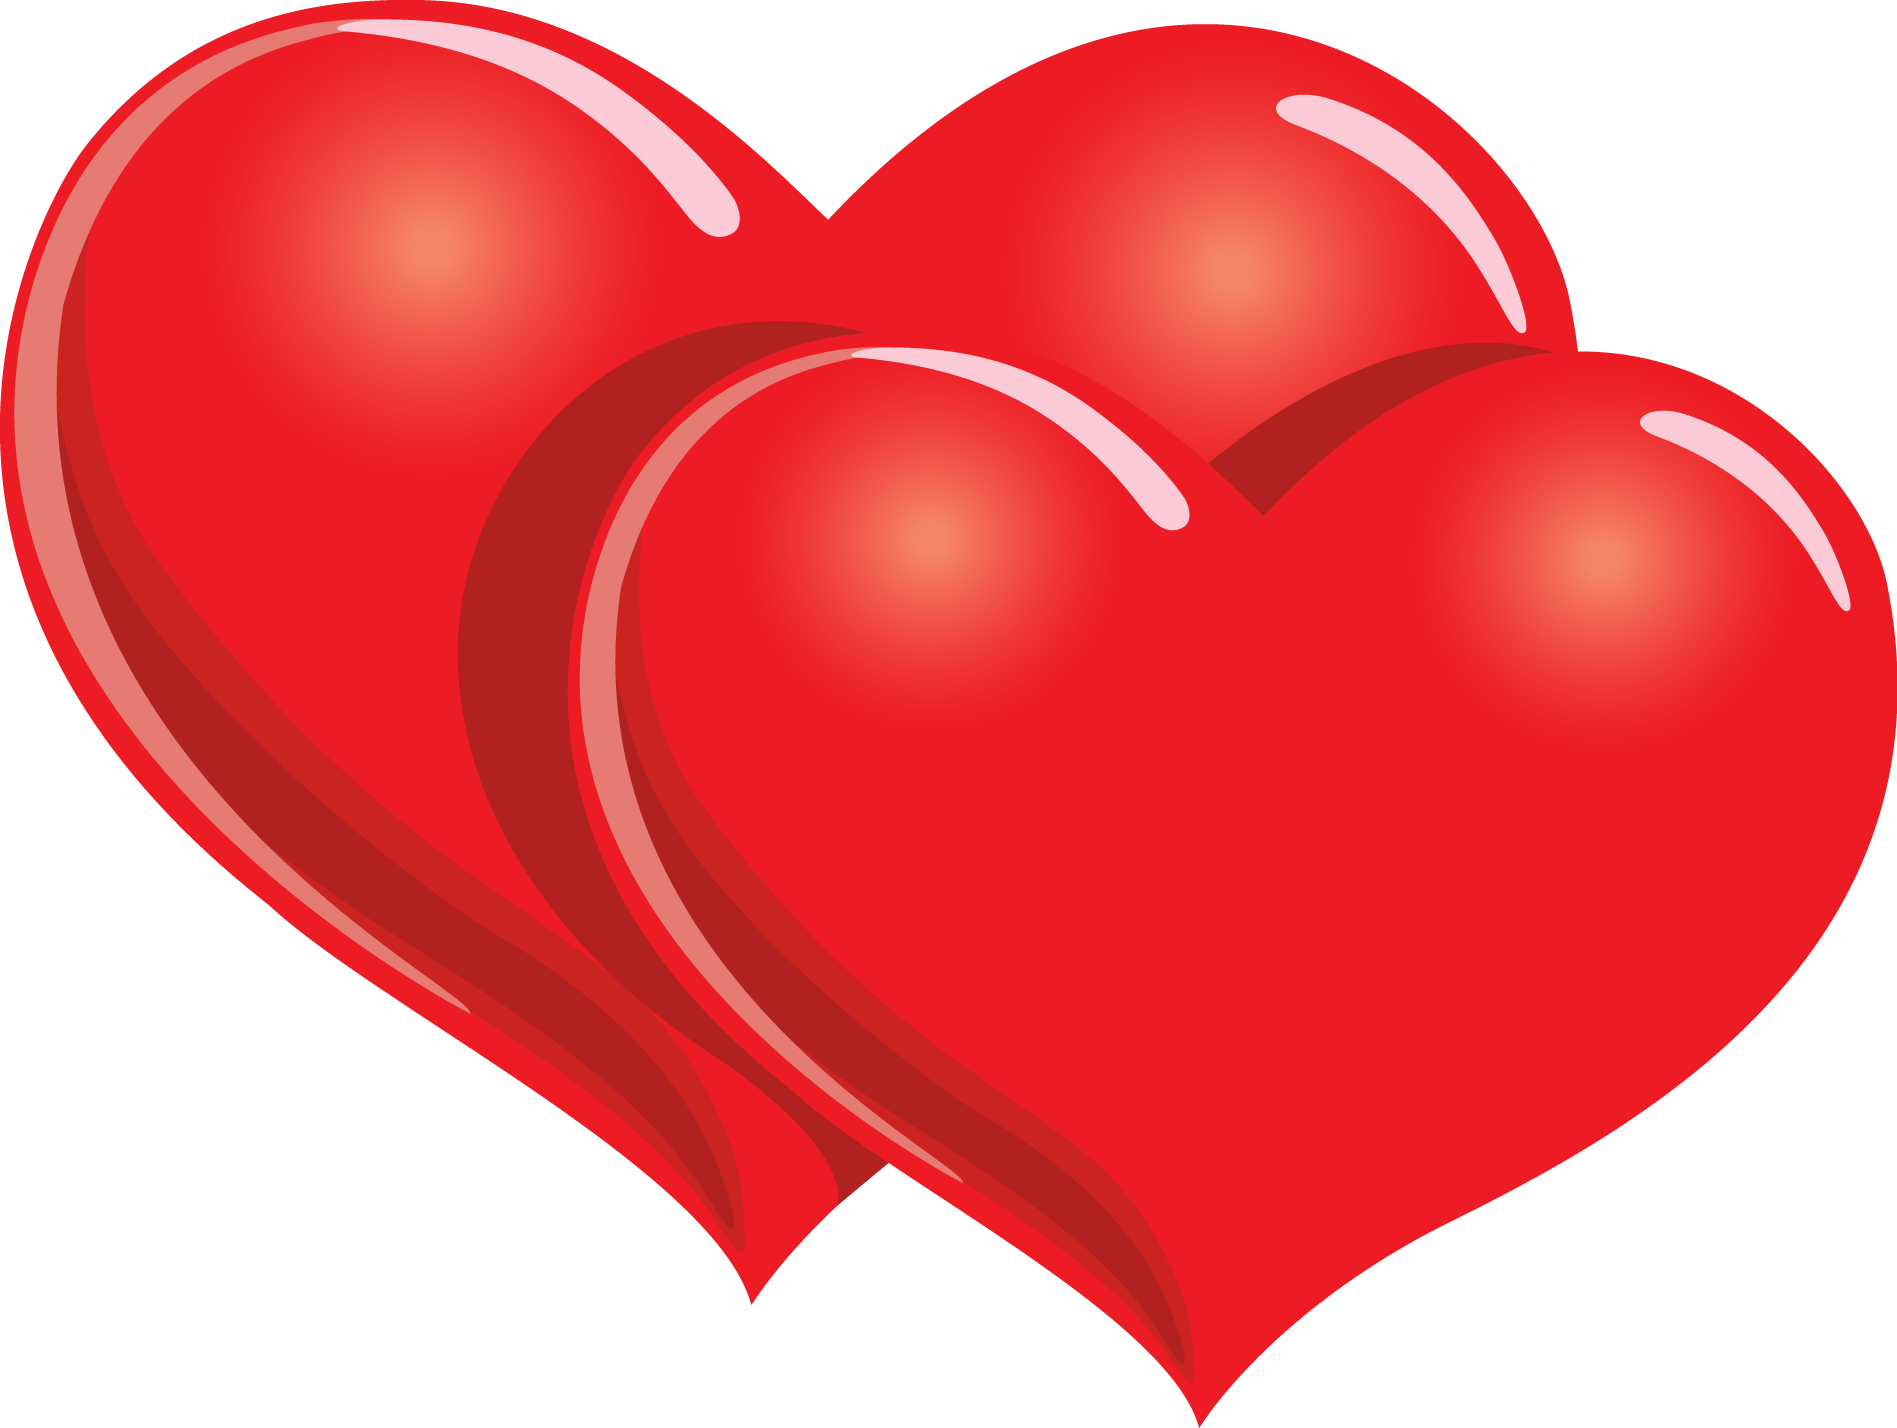 Hearts clipart relationship And search pictures Birthday Heart